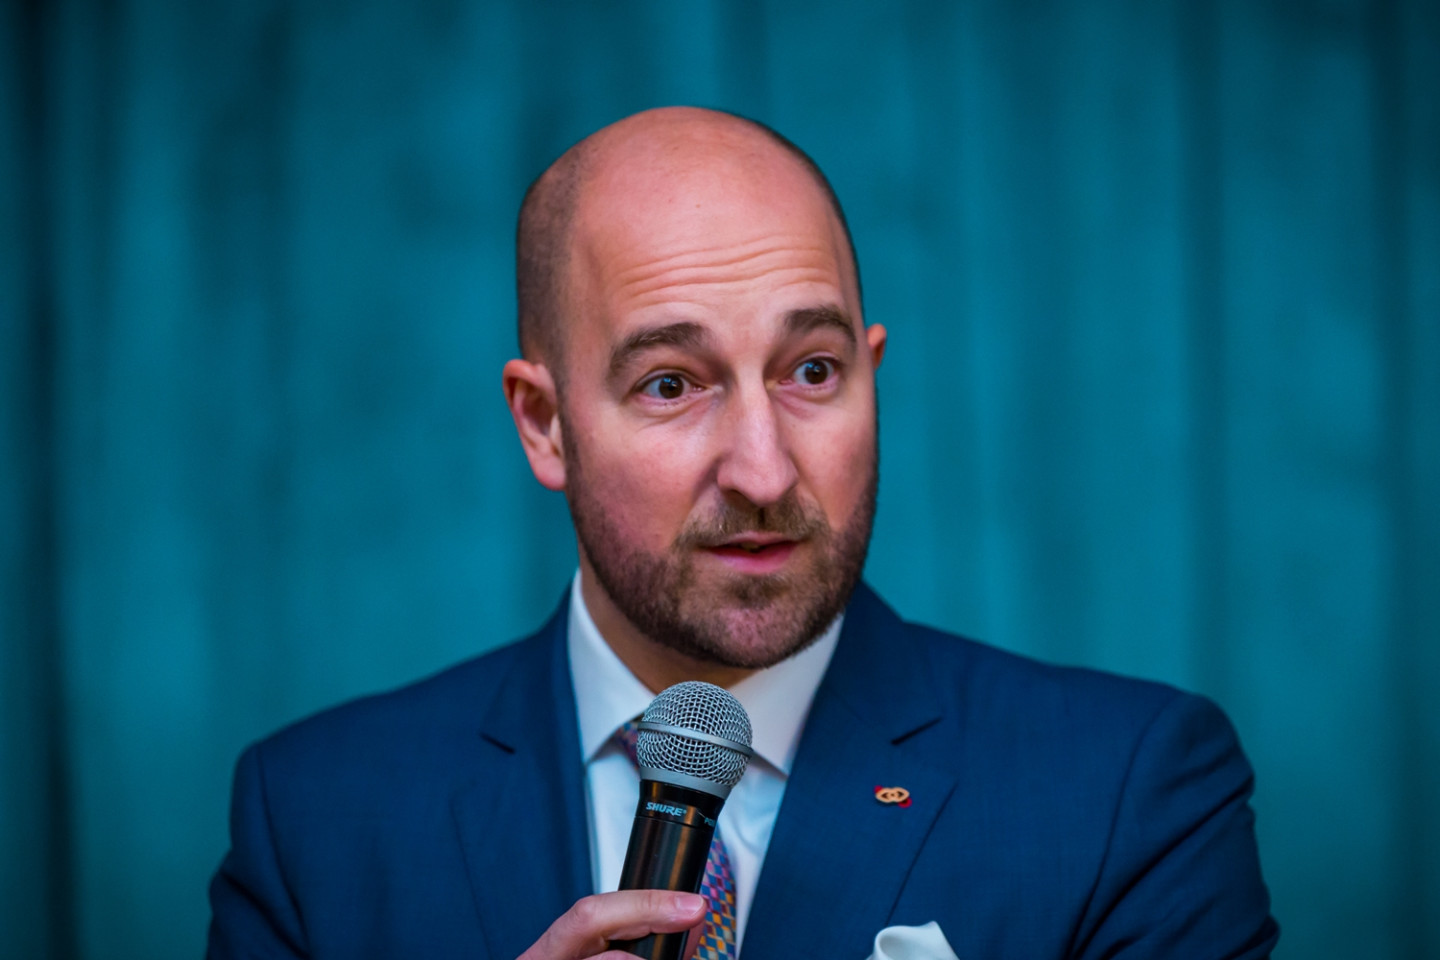 Gregory Millon, General Manager, Molitor Paris (MGallery)